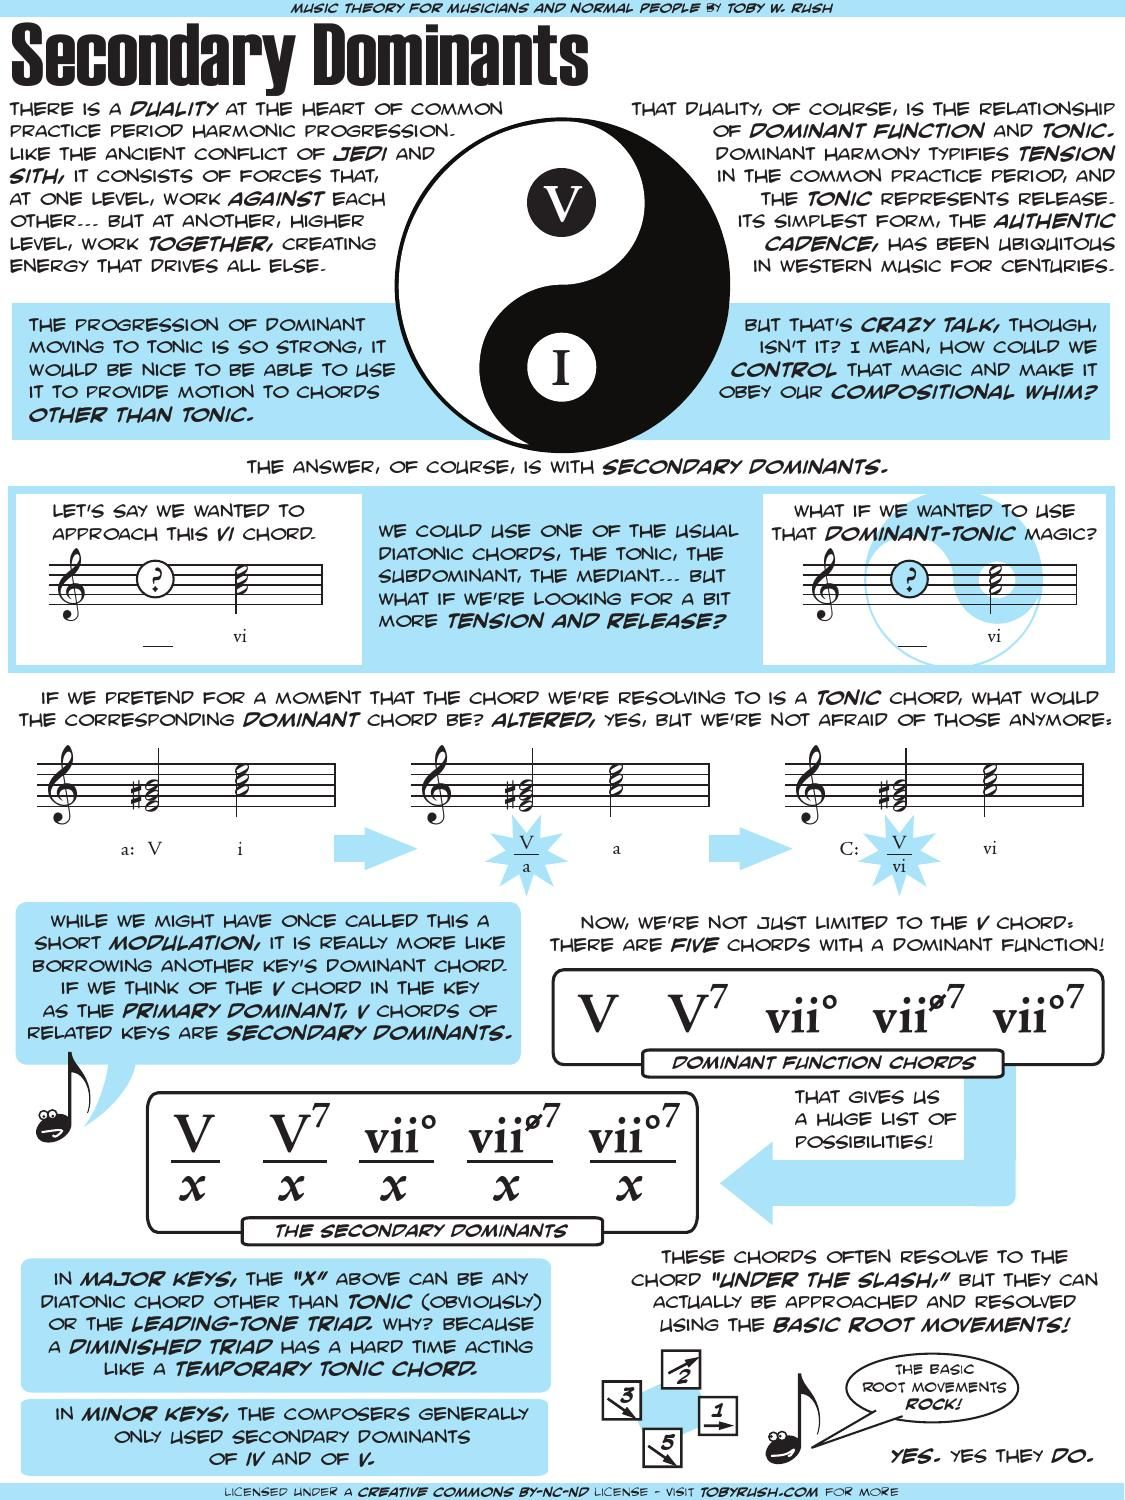 Secondary dominants music theory pianos and guitars a description of secondary dominant chords and their use by composers of the common practice period hexwebz Choice Image